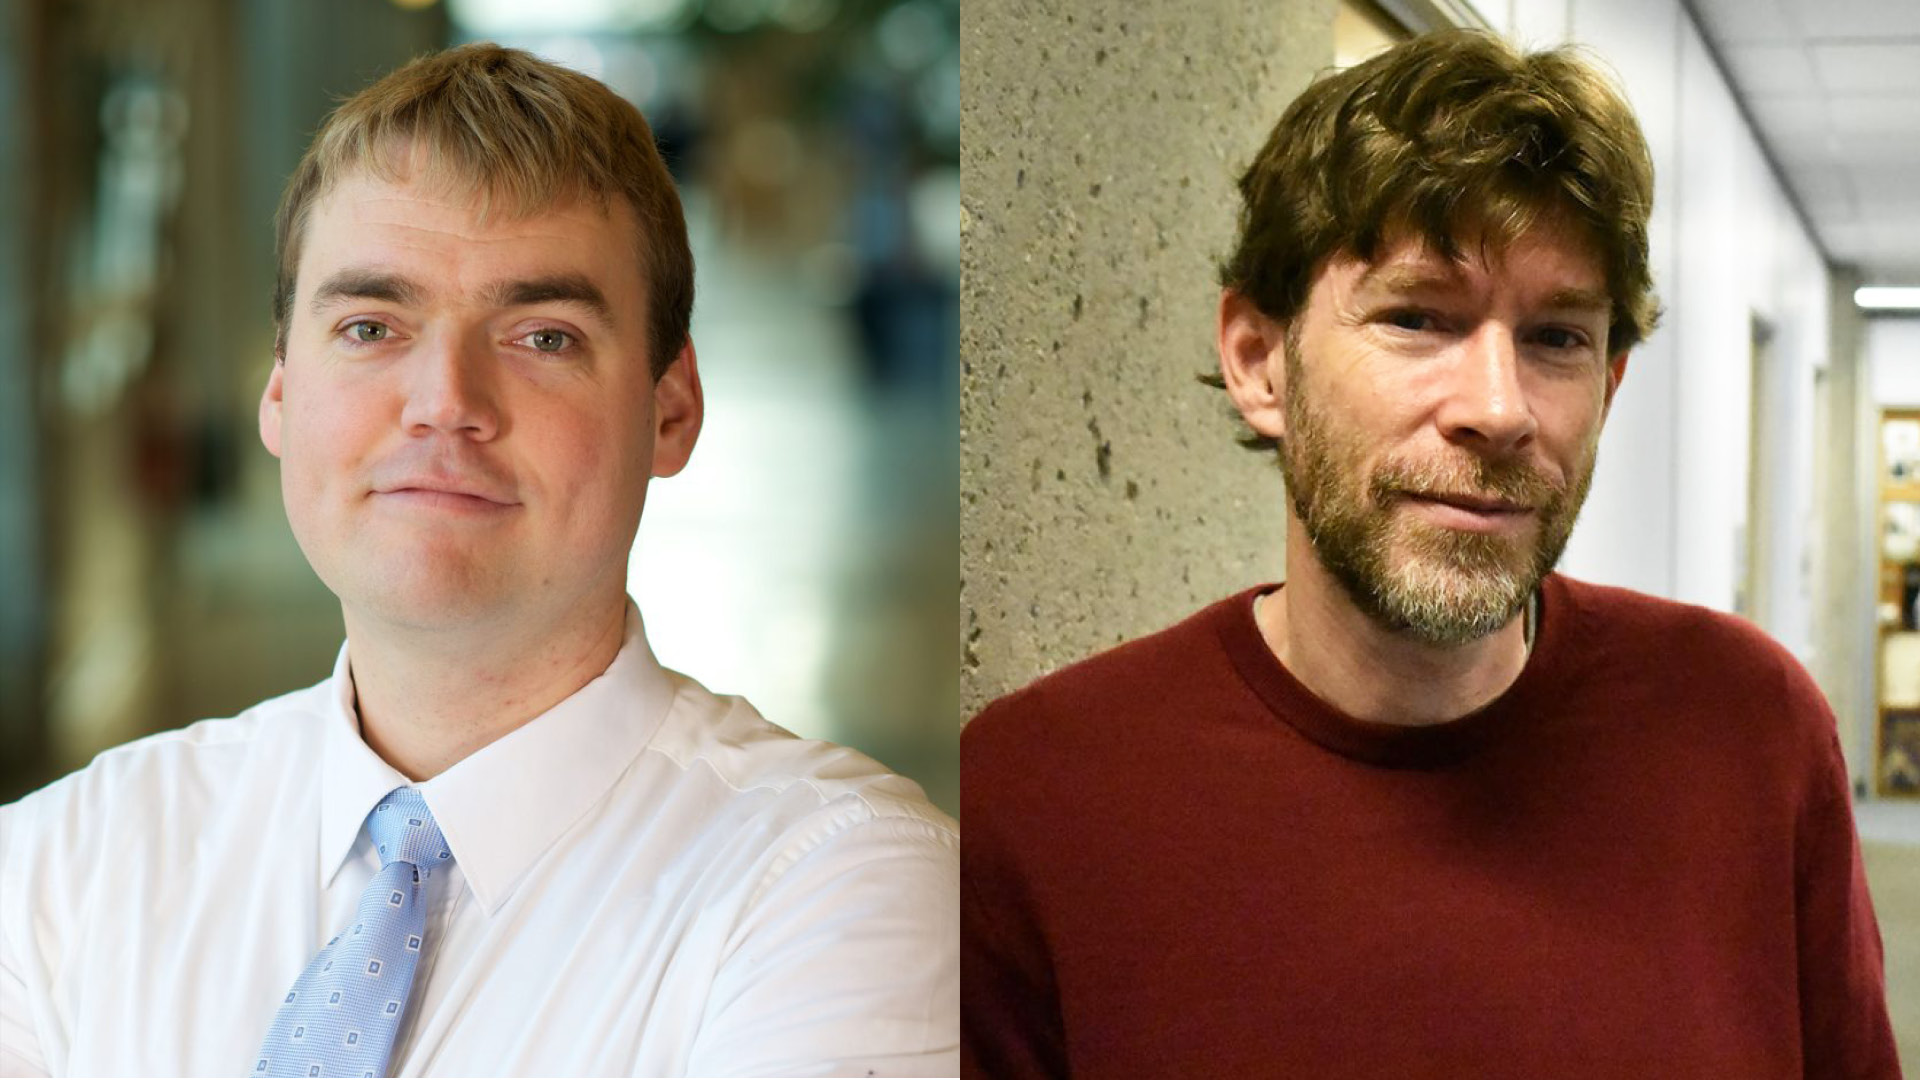 SSHRC Insight Grant award winners Dr. Benjamin Bryce (left), and Dr. Eagle Glassheim (right).